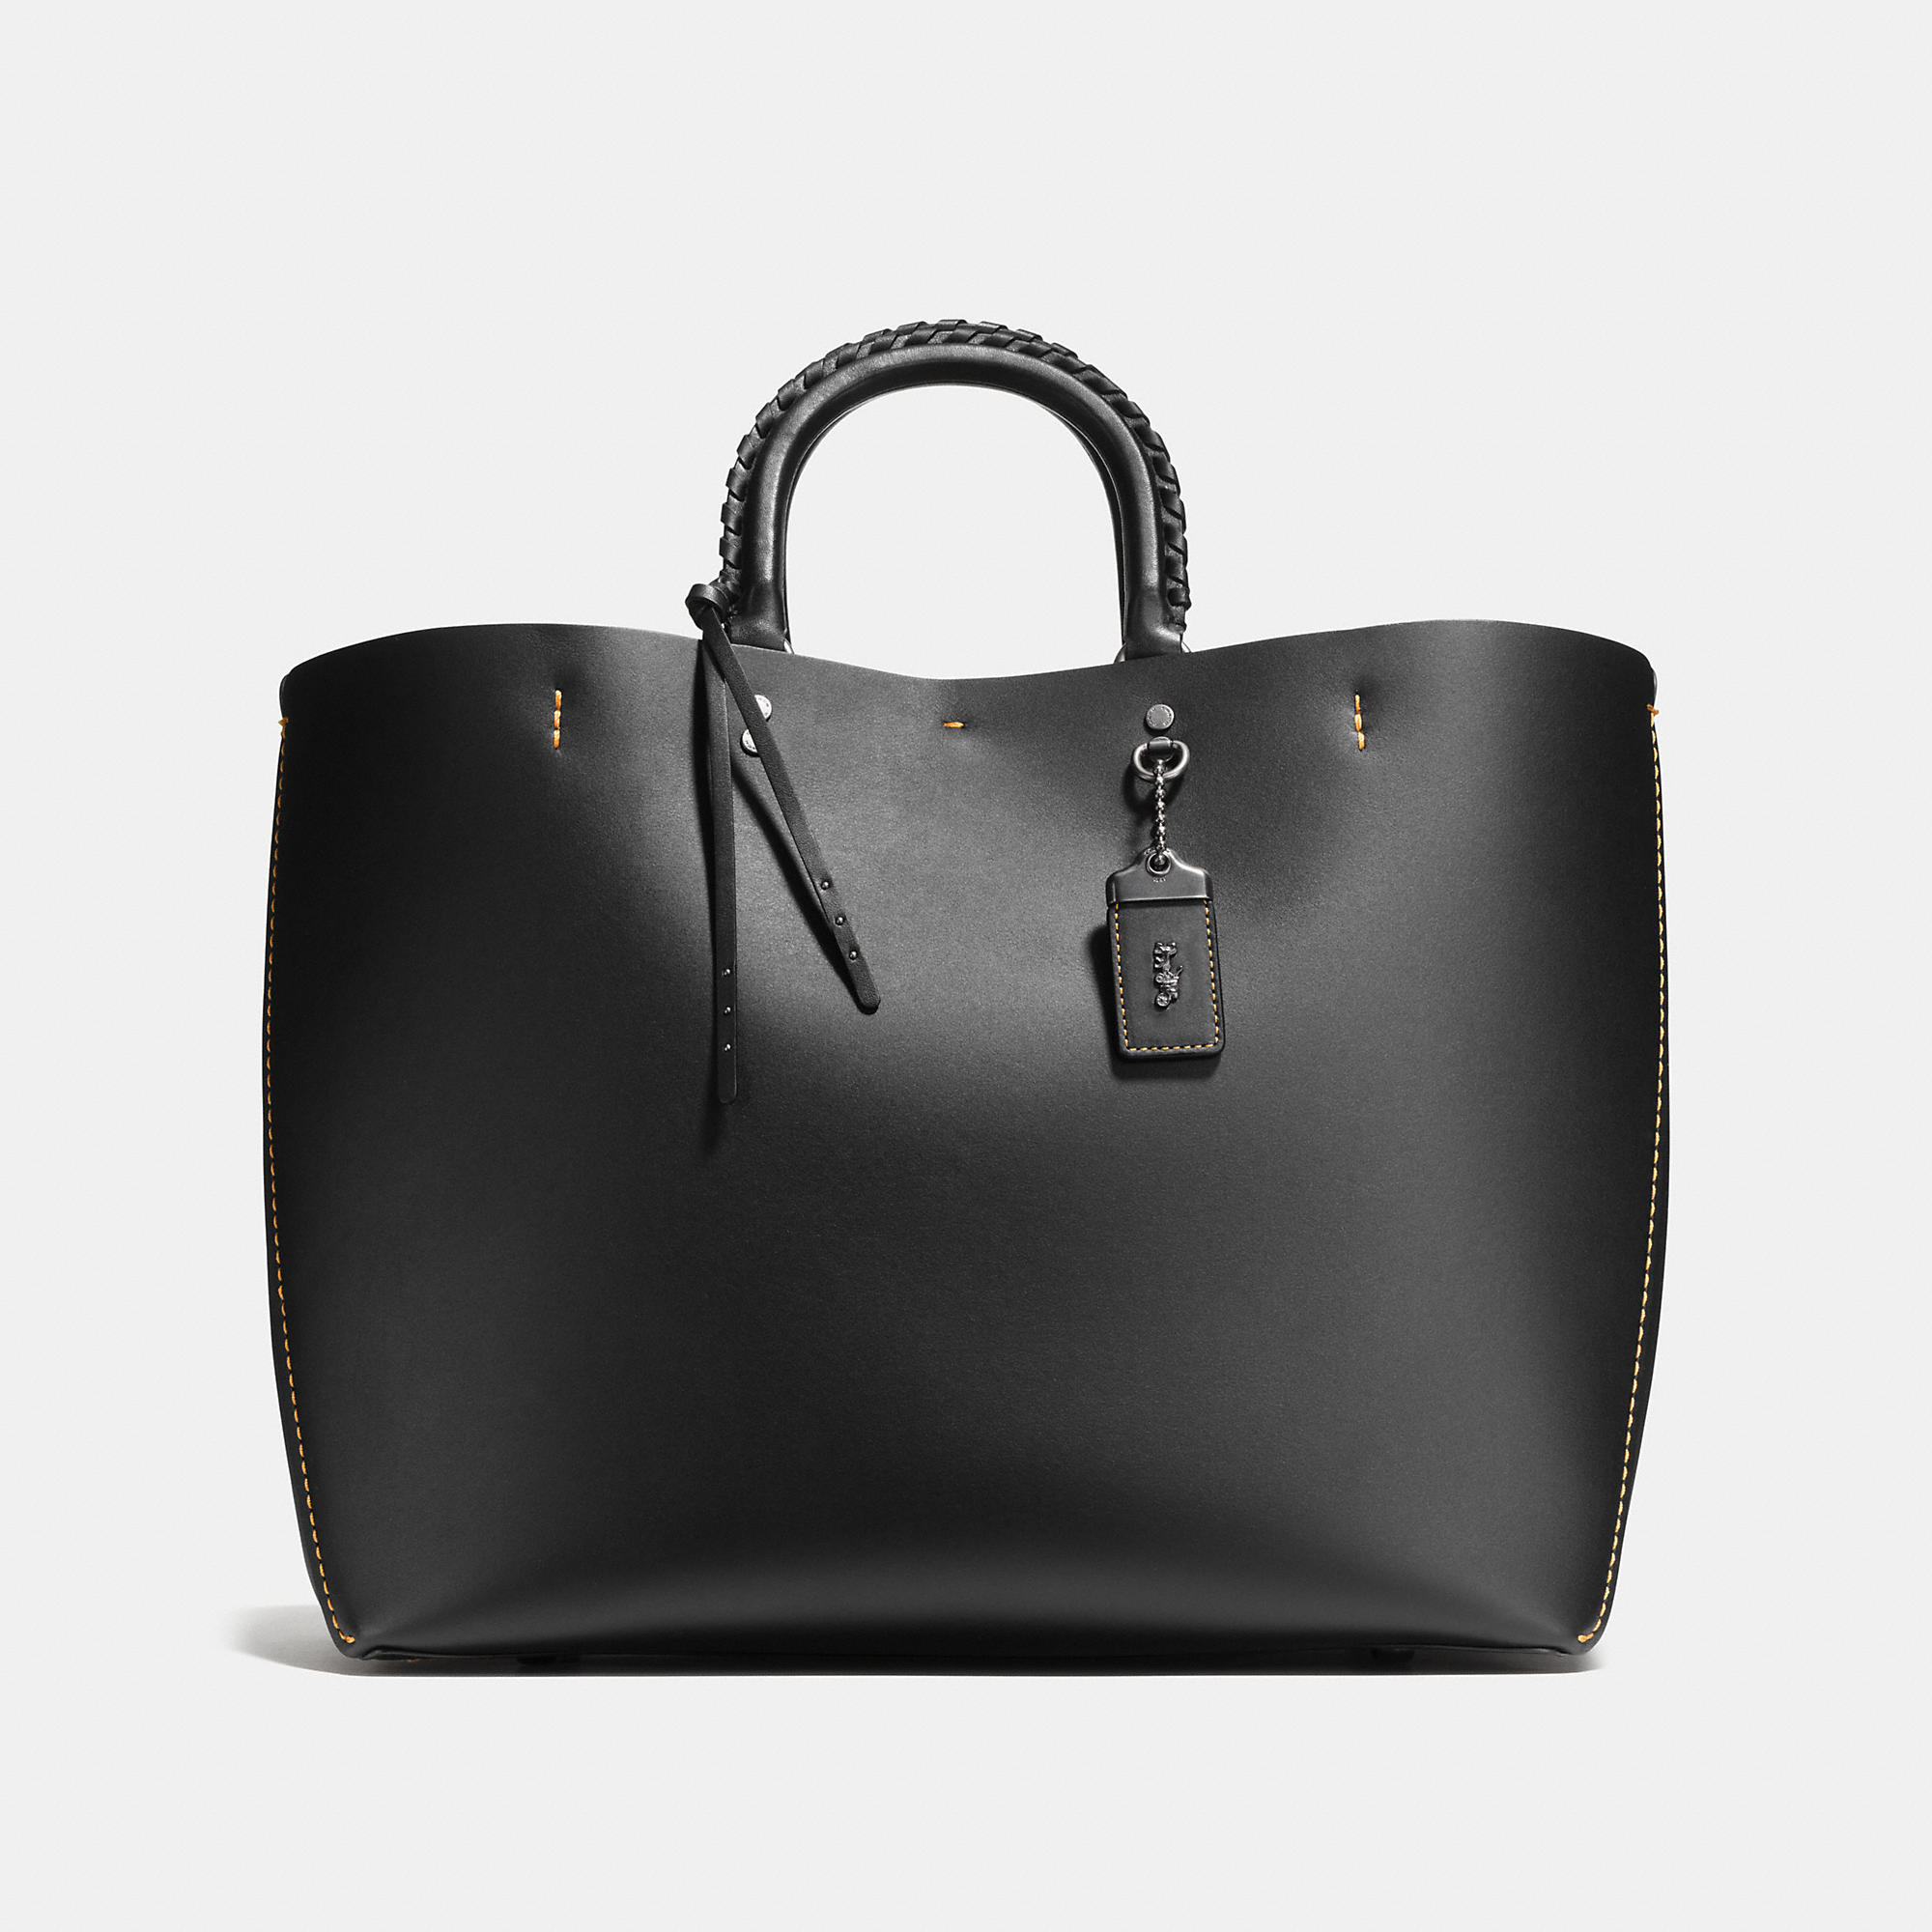 Coach Rogue Tote In Glovetanned Calf Leather With Embellished Handle